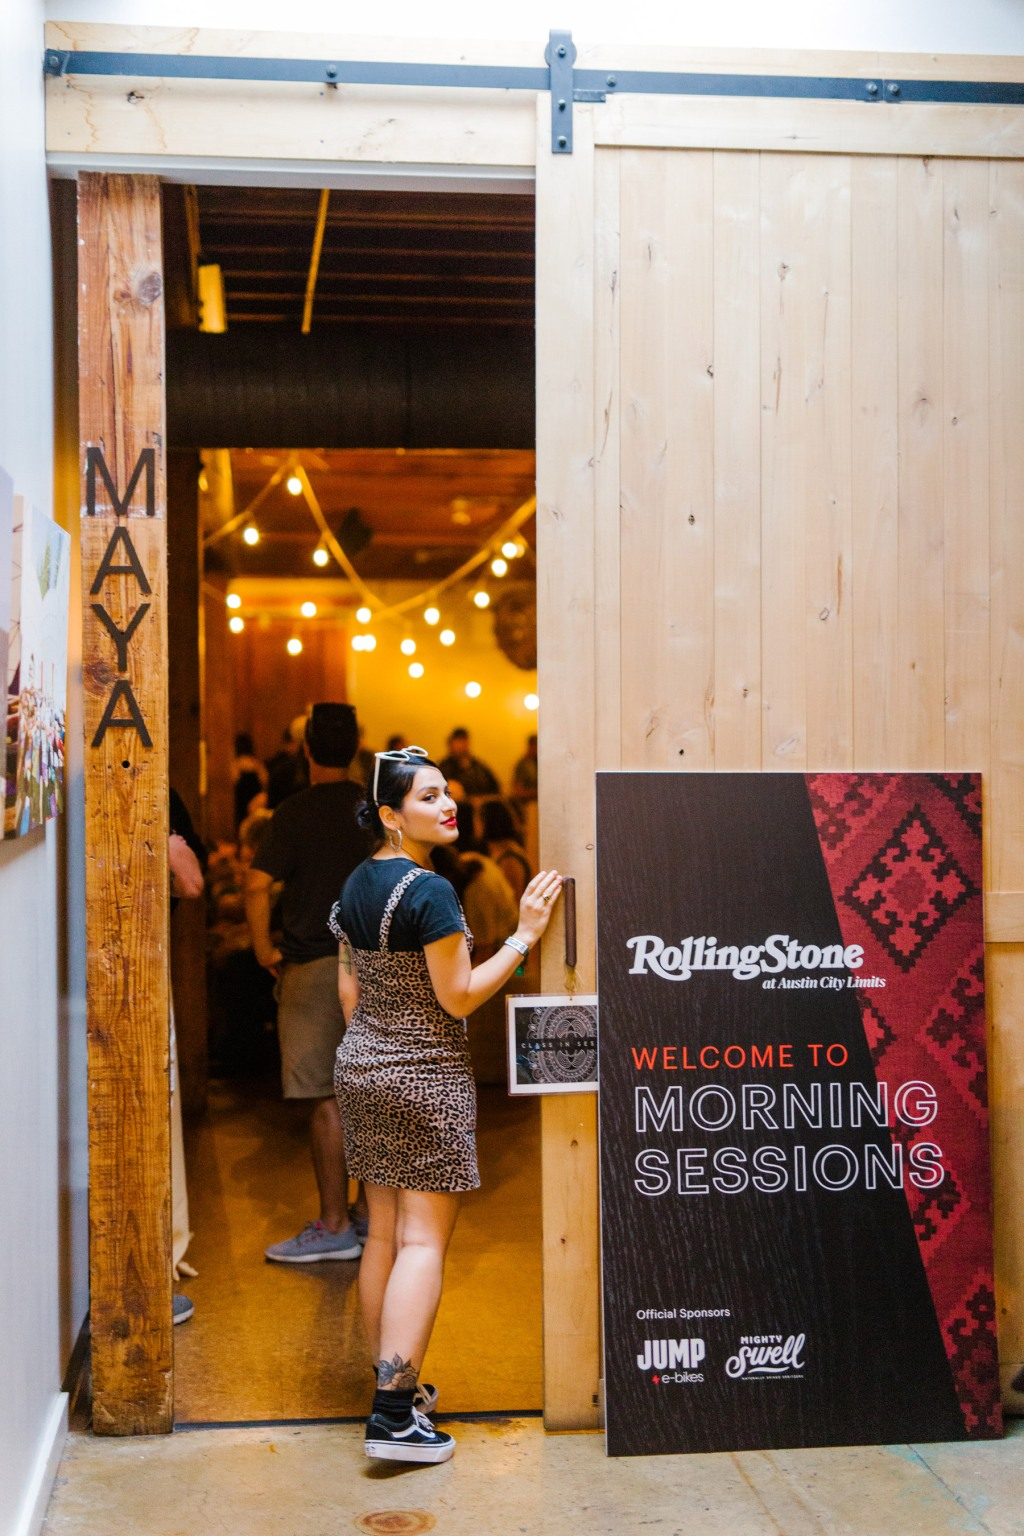 The Rolling Stone ACL 2018 Morning Sessions took place on October 6th at Wanderlust Yoga in the heart of Austin during the first weekend of the Austin City Limits festival.